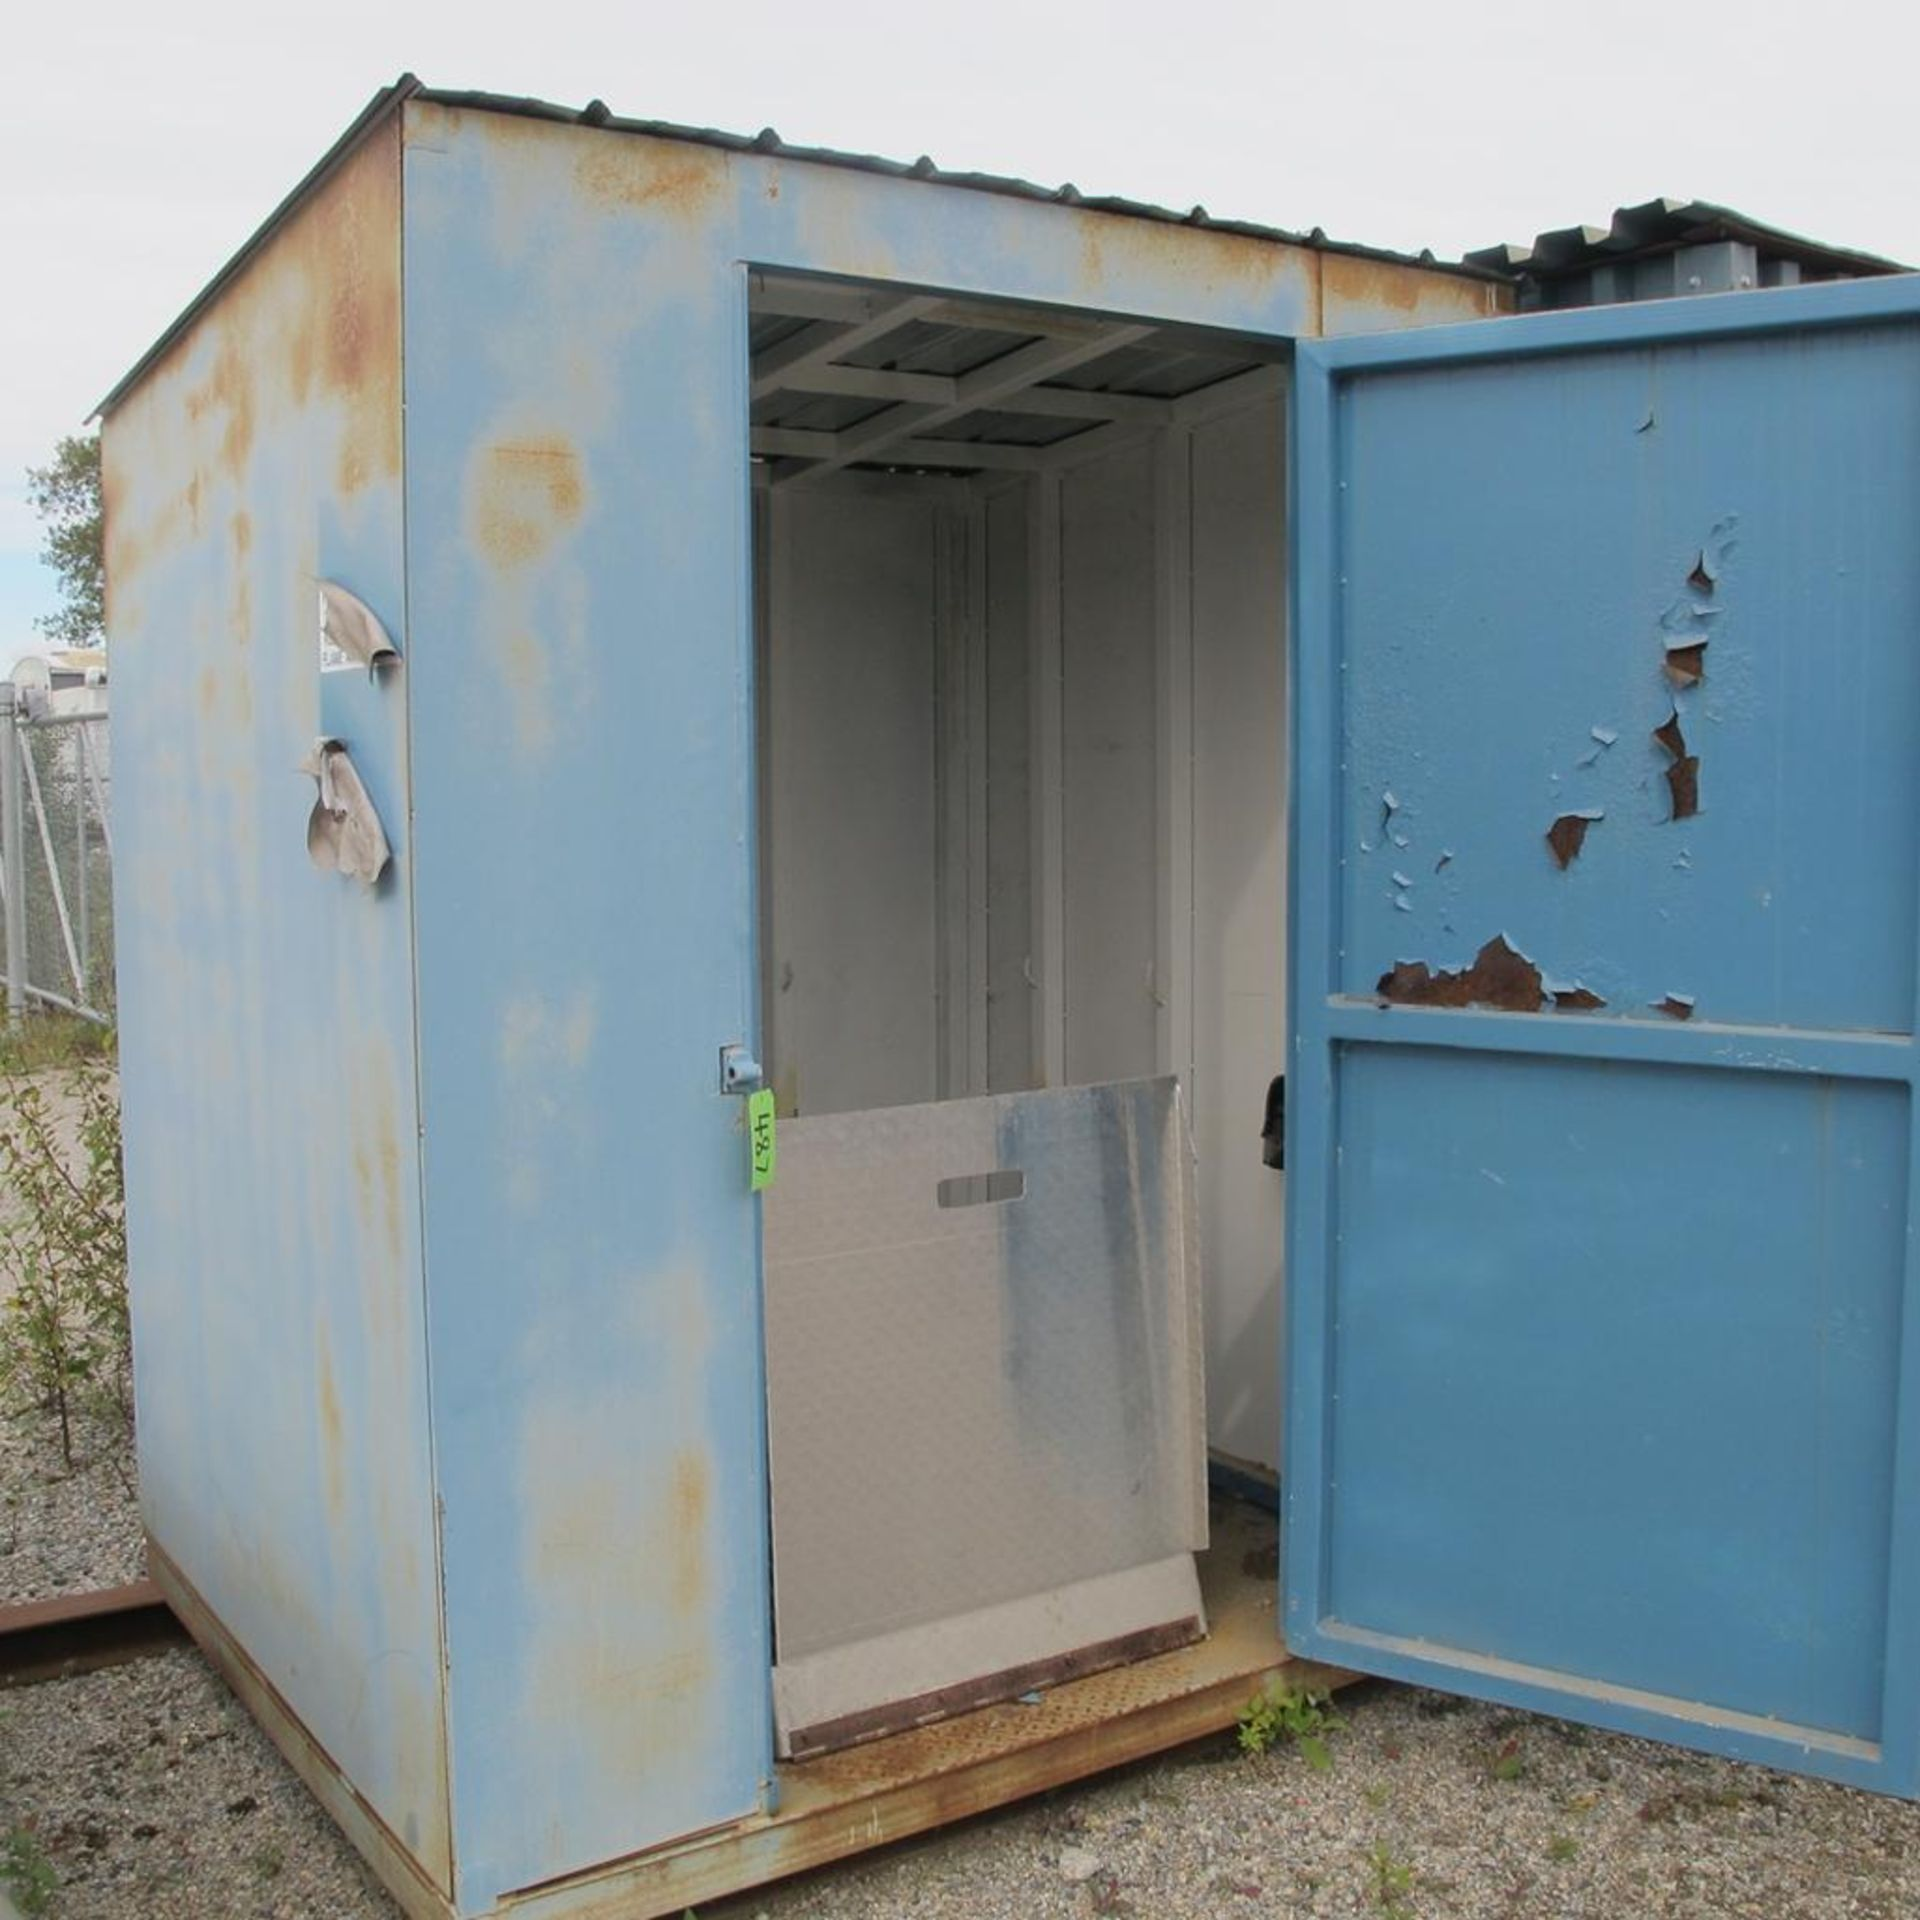 Lot 487 - PORTABLE STEEL GAS STORAGE SHED WITH FOLD DOWN RAMP (WEST YARD)